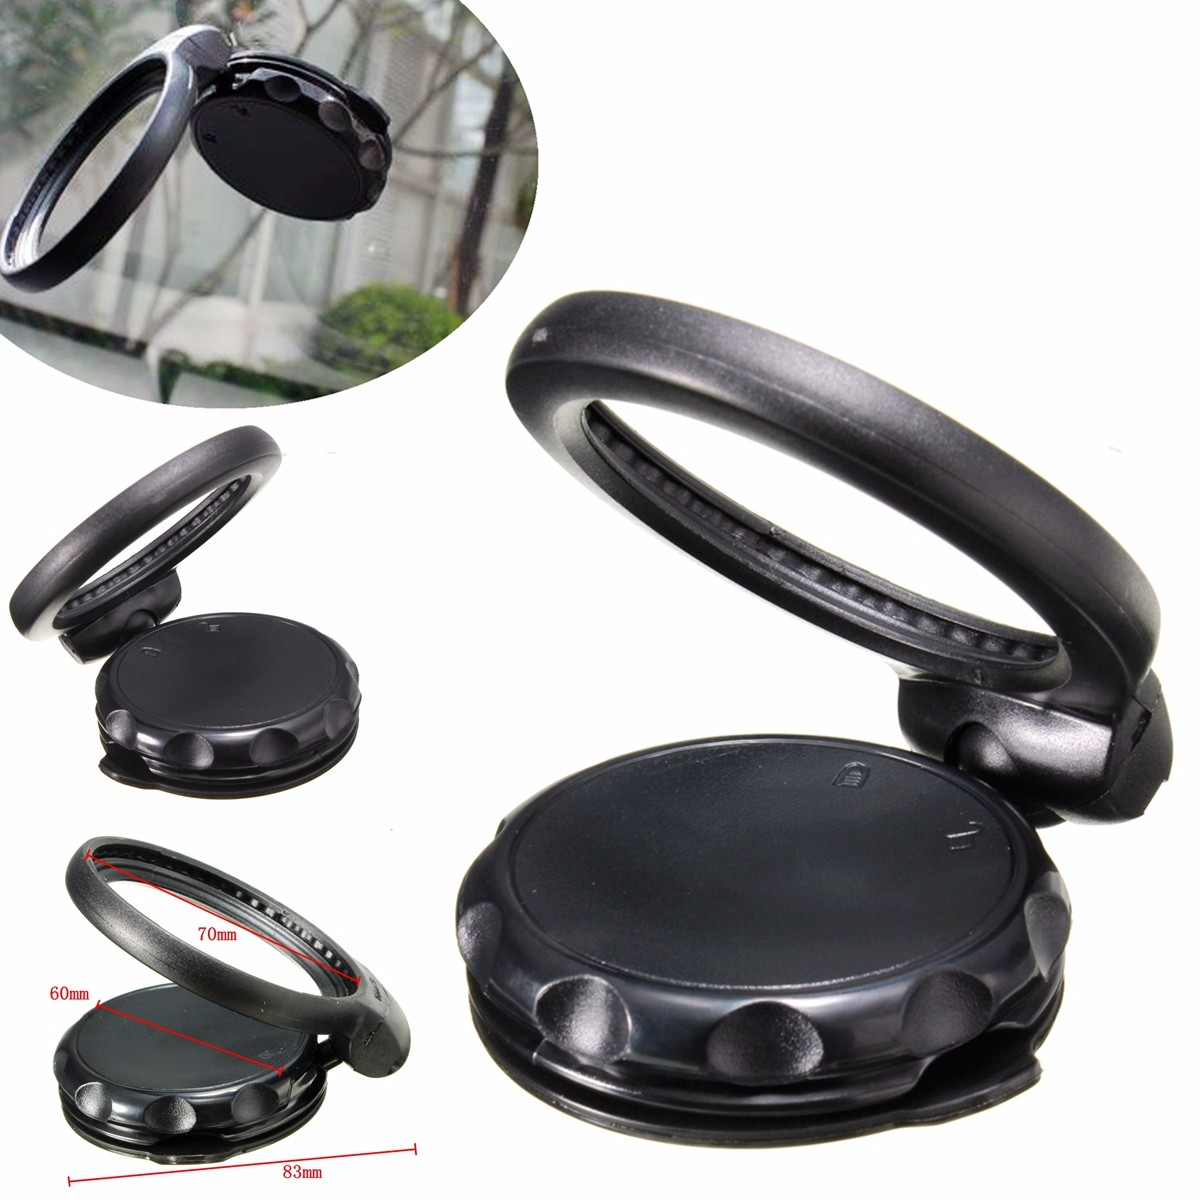 Car EasyPort Windshield Suction Mount Holder for TOMTOM GPS One XL XXL PRO 125